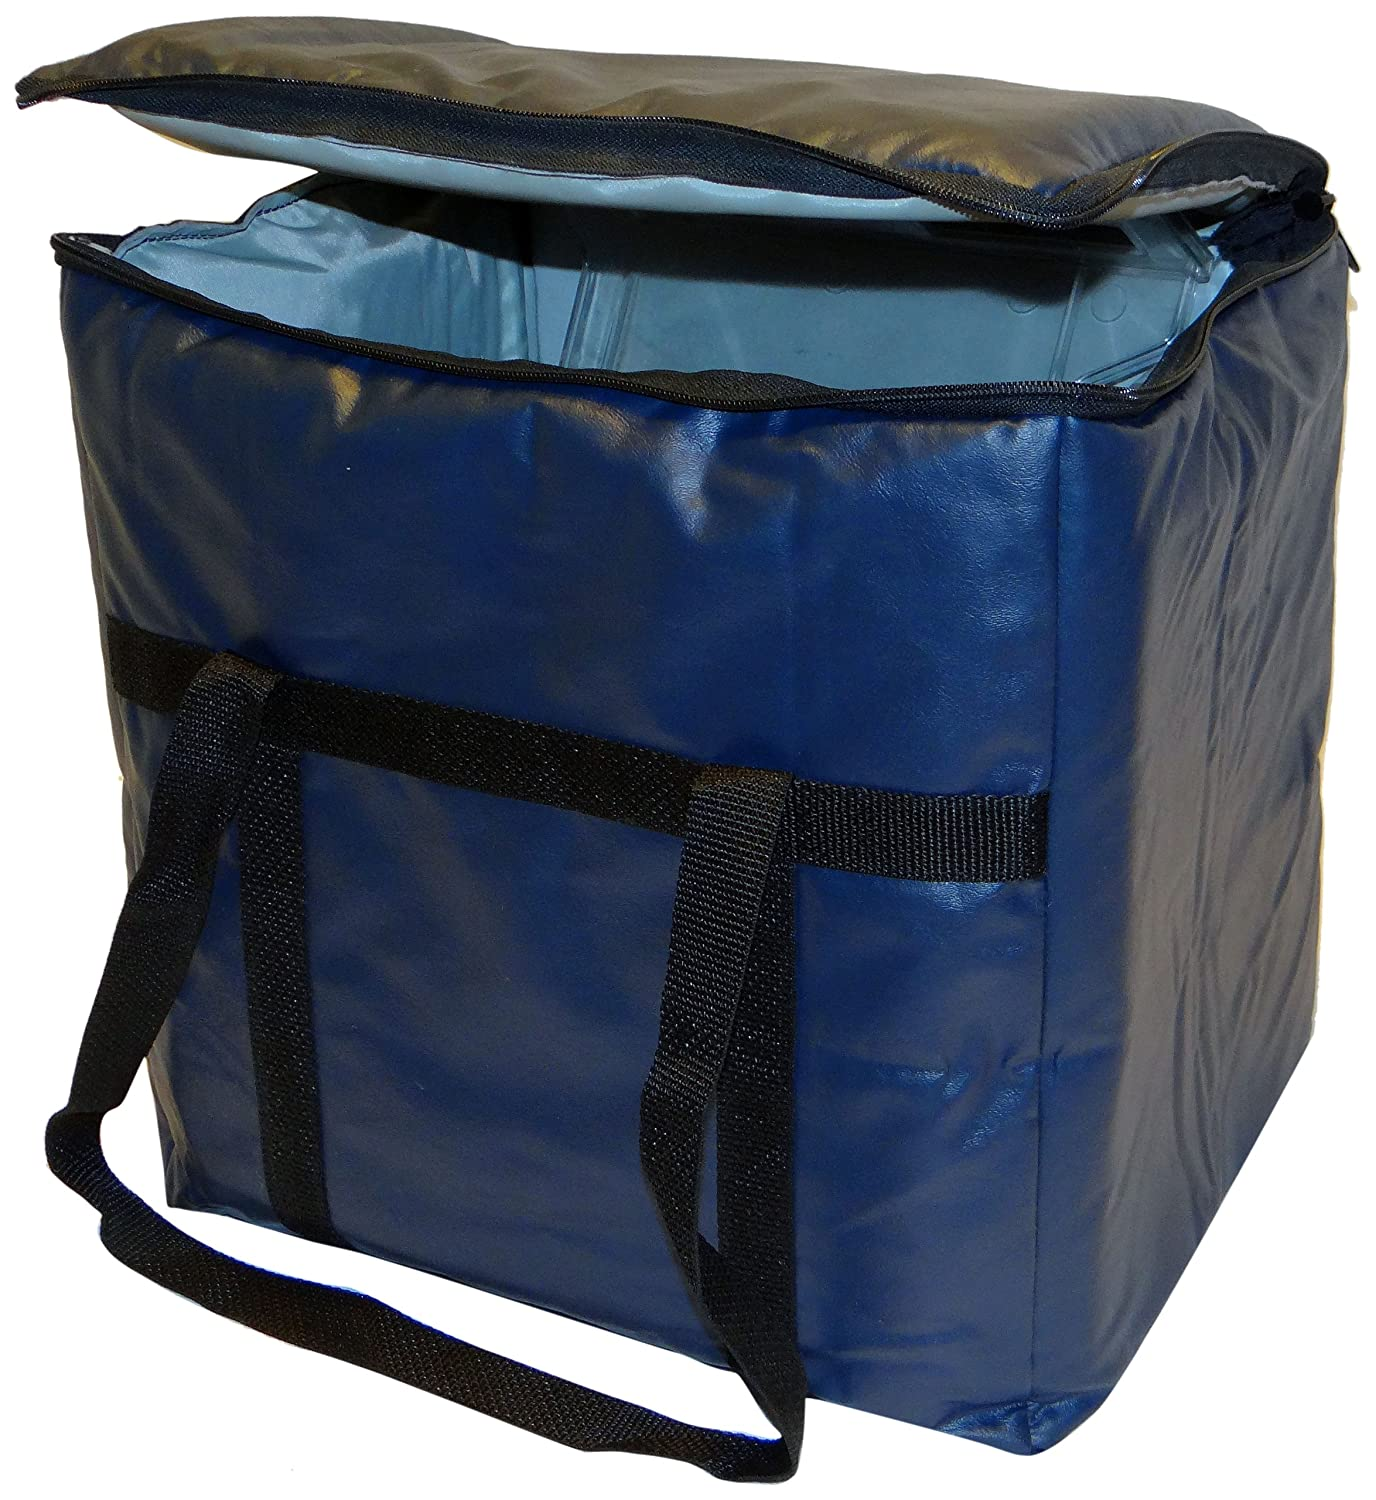 Phoenix 13-Inch by 22-Inch by 10-Inch Insulated Delivery Bags, Dark blue